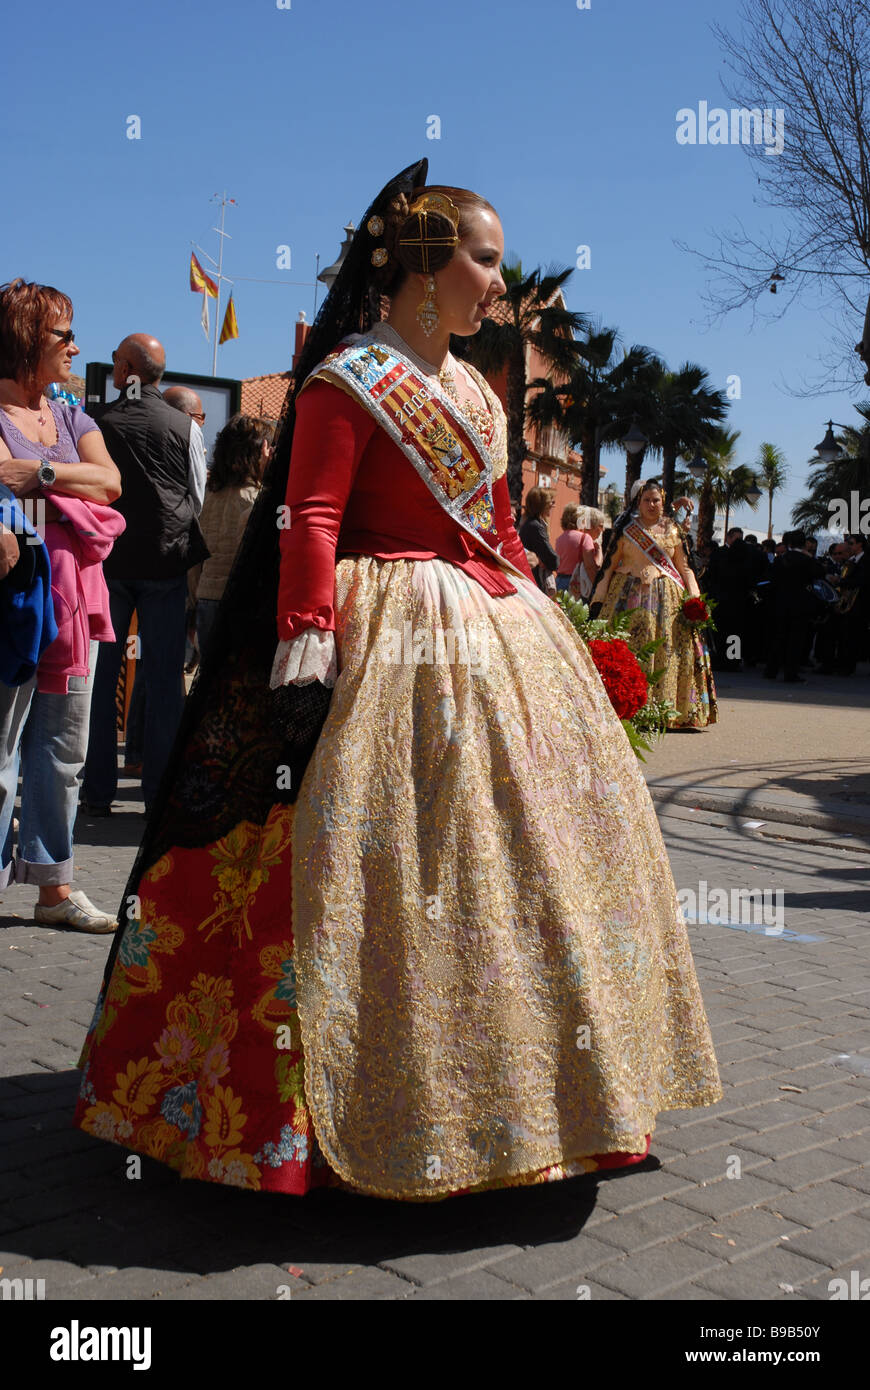 Fallera in traditional dress, Las Fallas Fiesta, Dia de San Jose Stock Photo,...